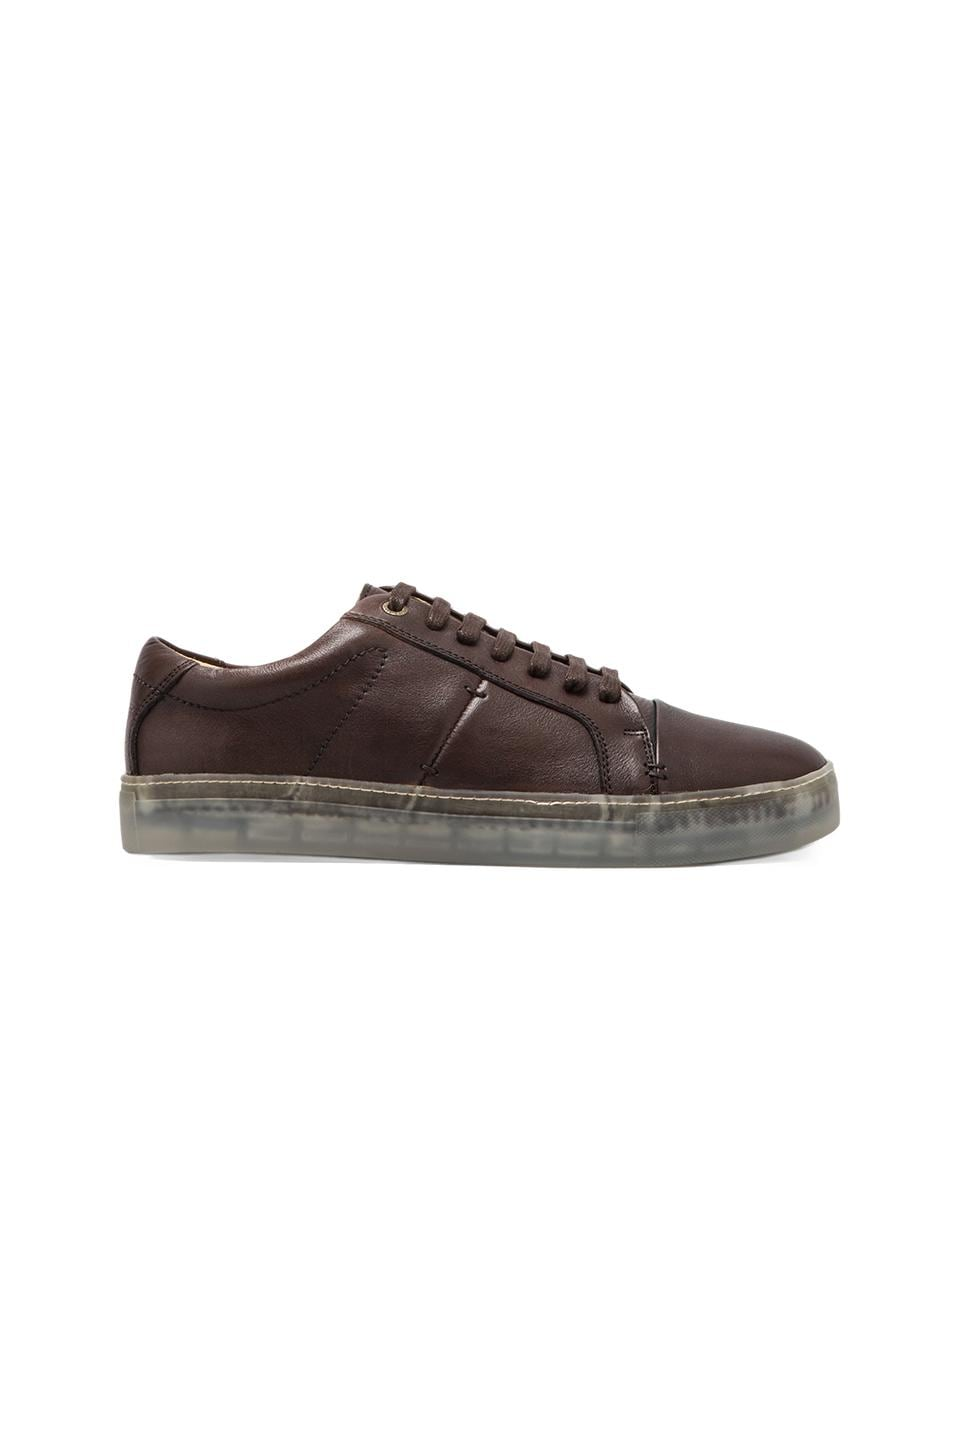 J.D. FISK Cadet Sneaker in Dark Brown